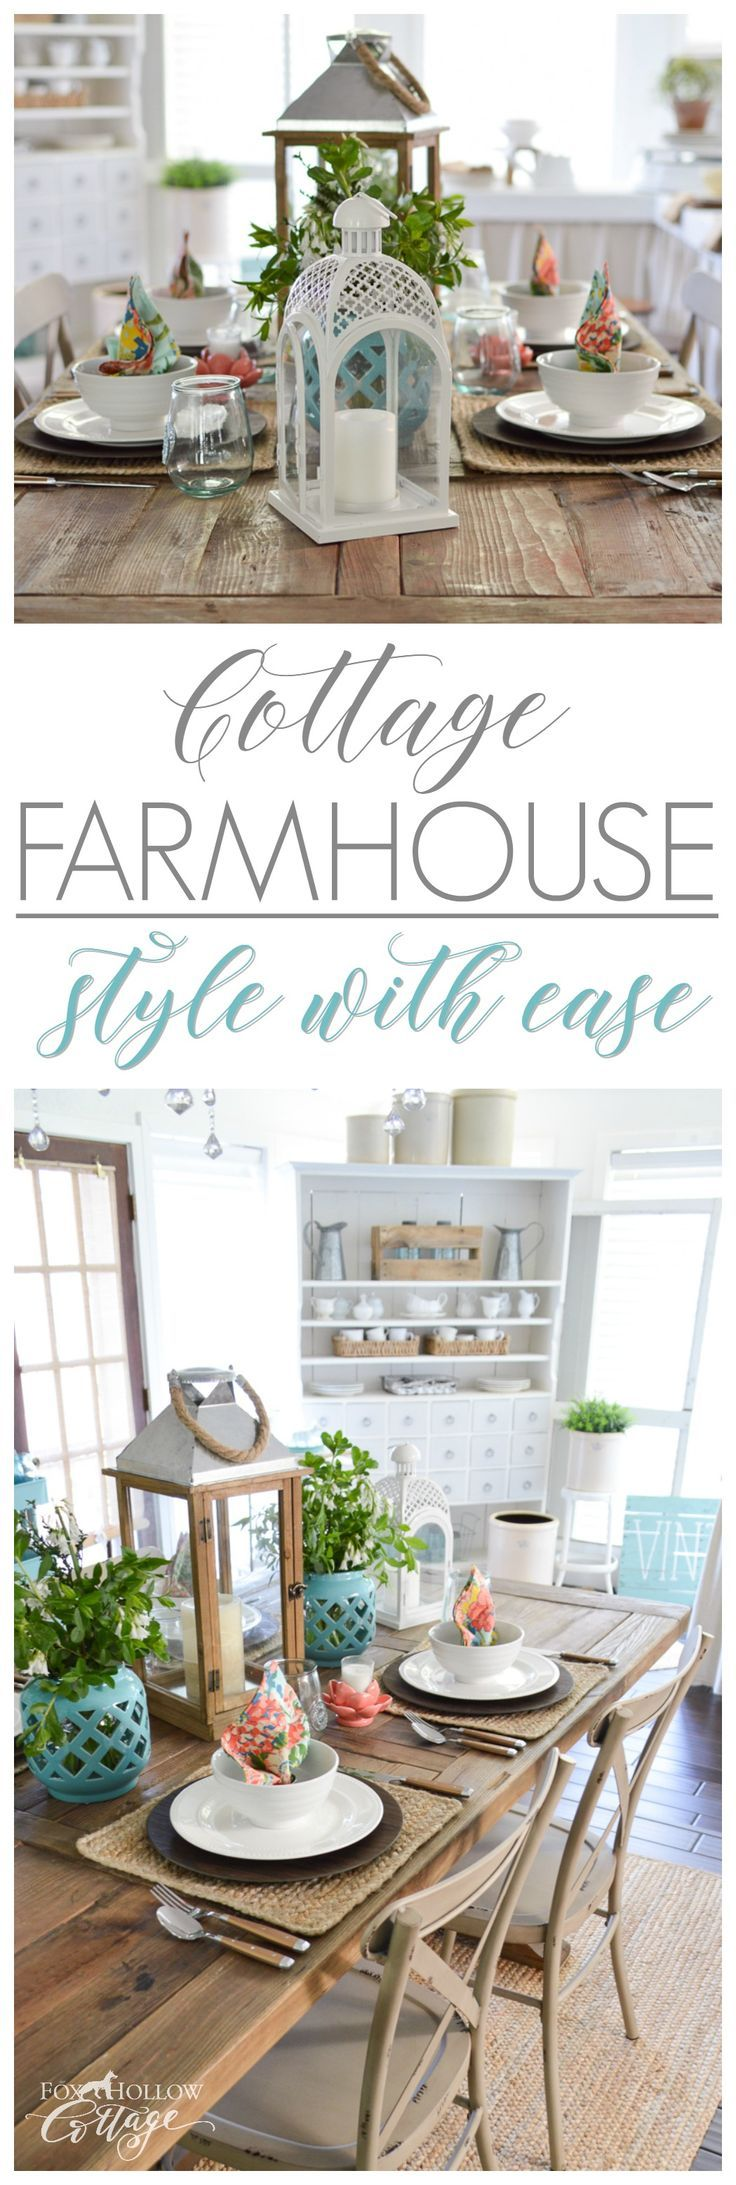 Cottage Farmhouse Table Decorating Ideas | Farming, Farmhouse style ...